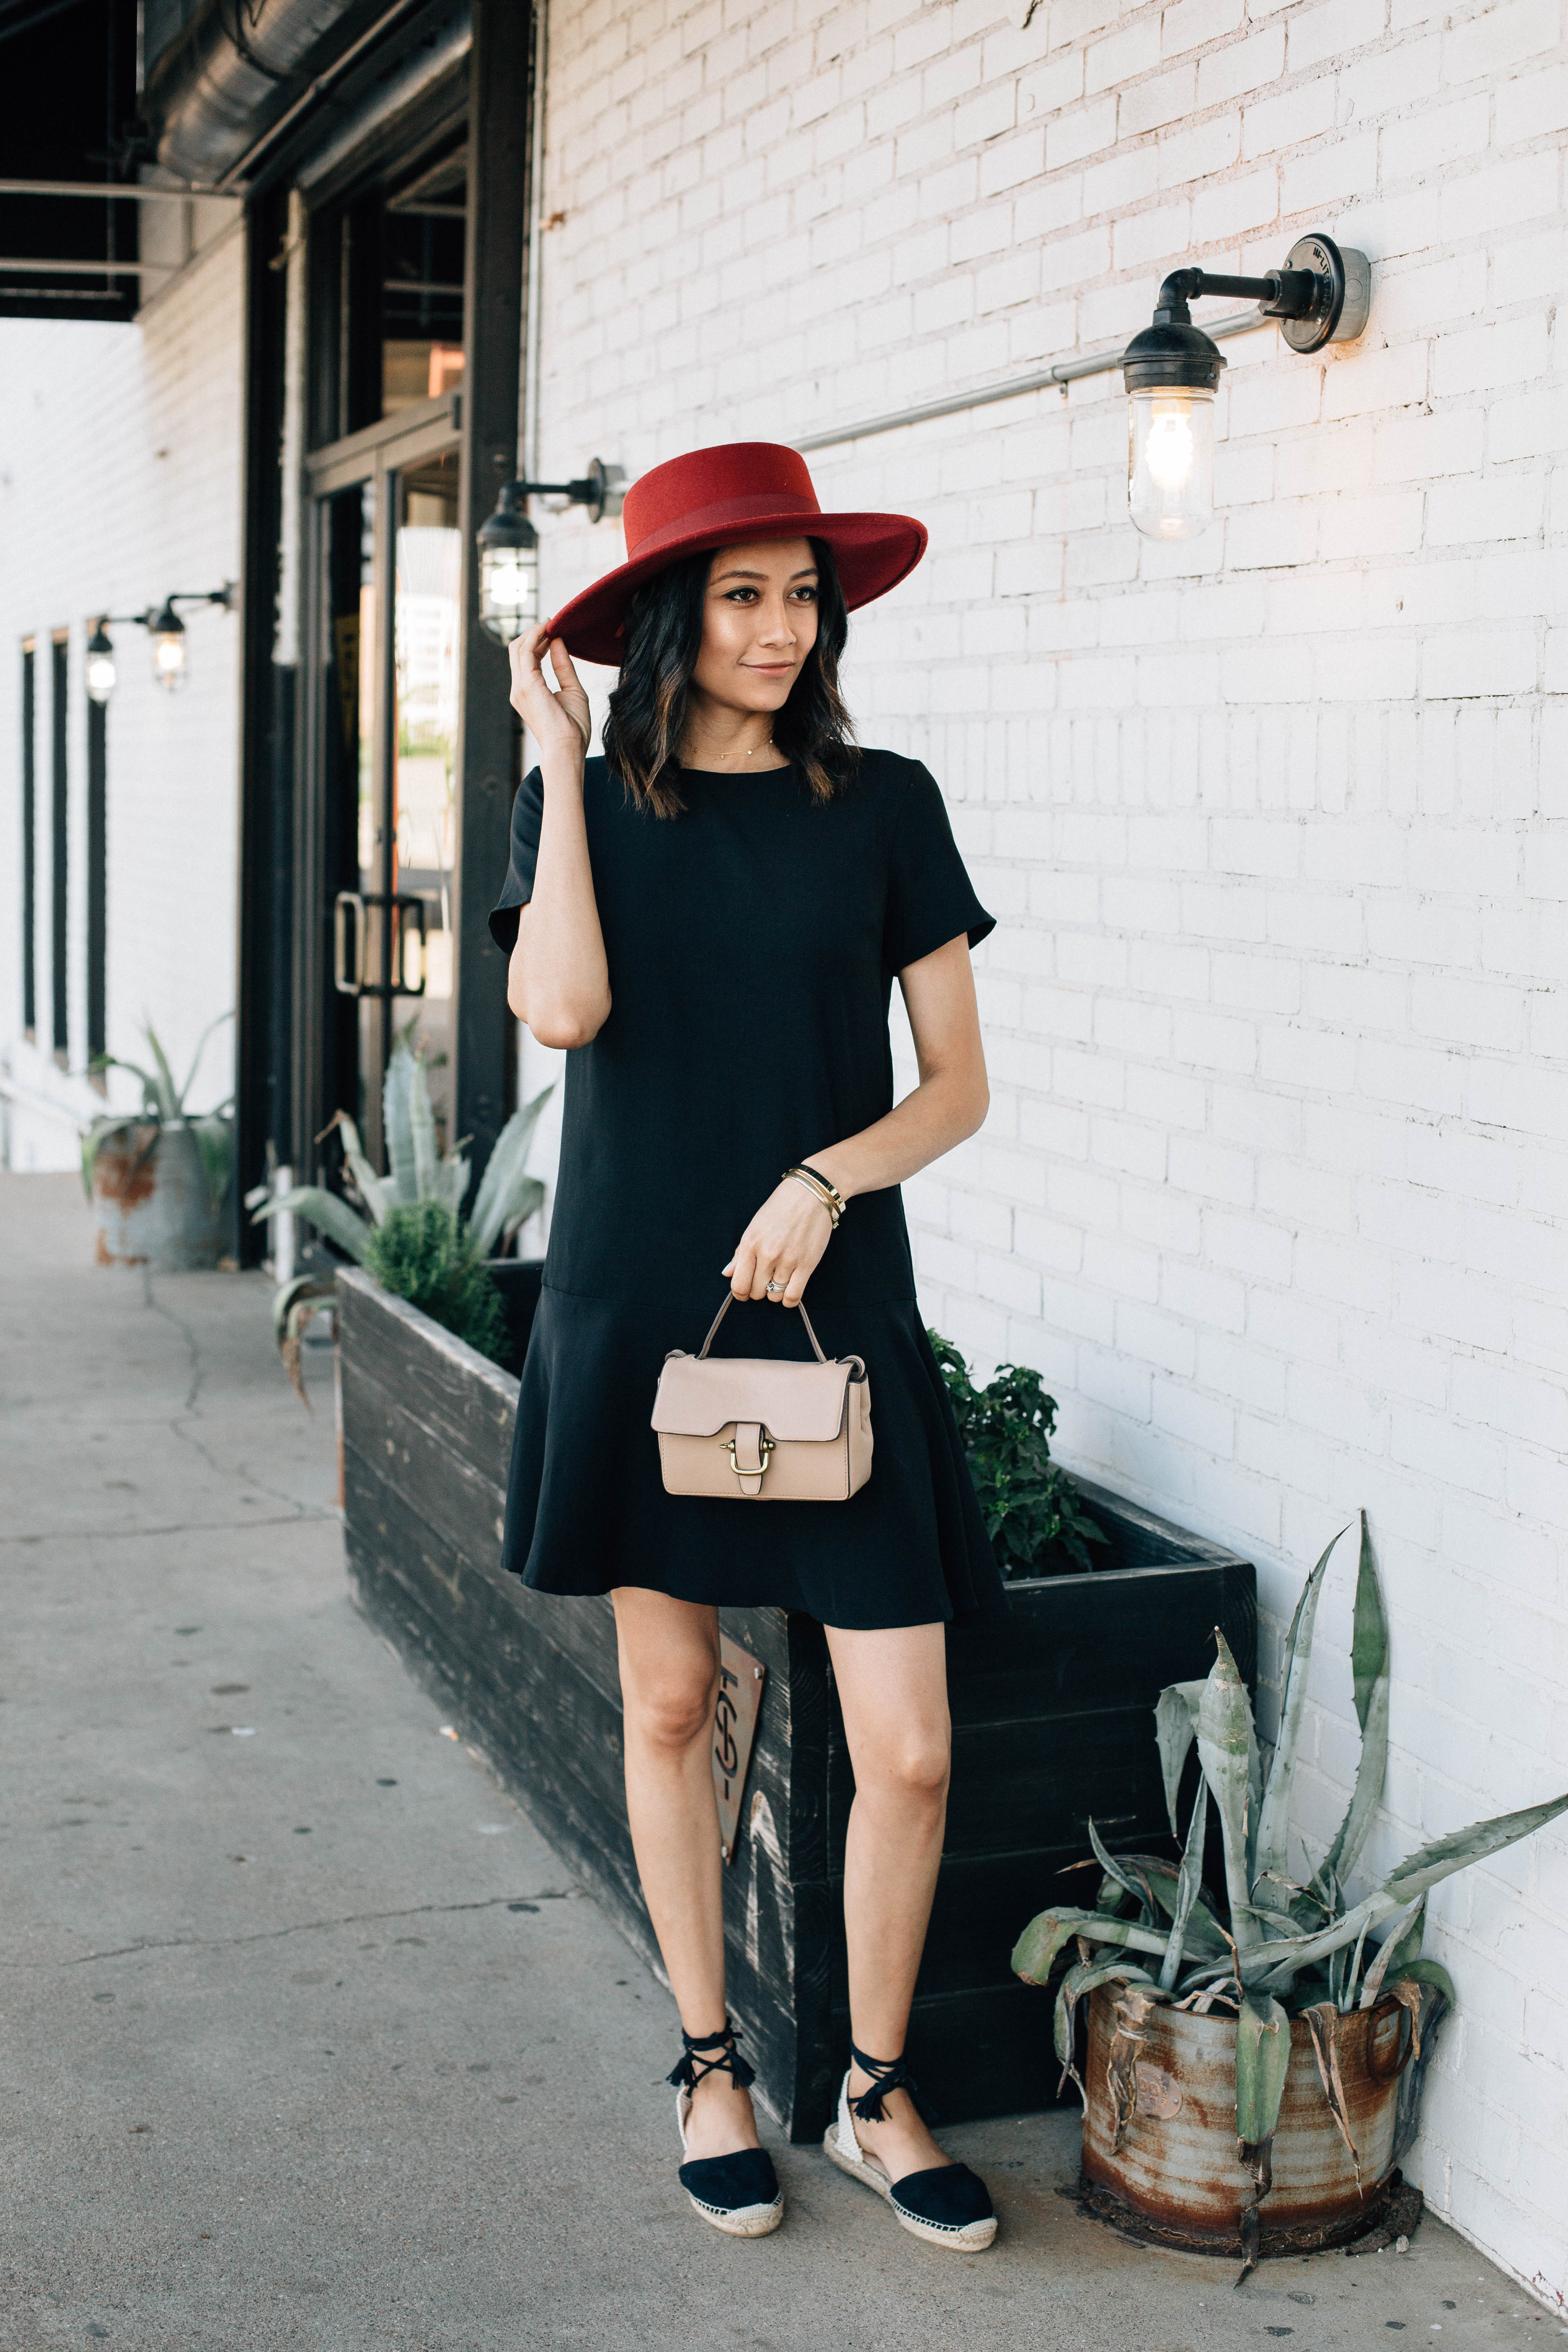 4 Style Tips For A Feminine Look Without The Pink Hues & Frills